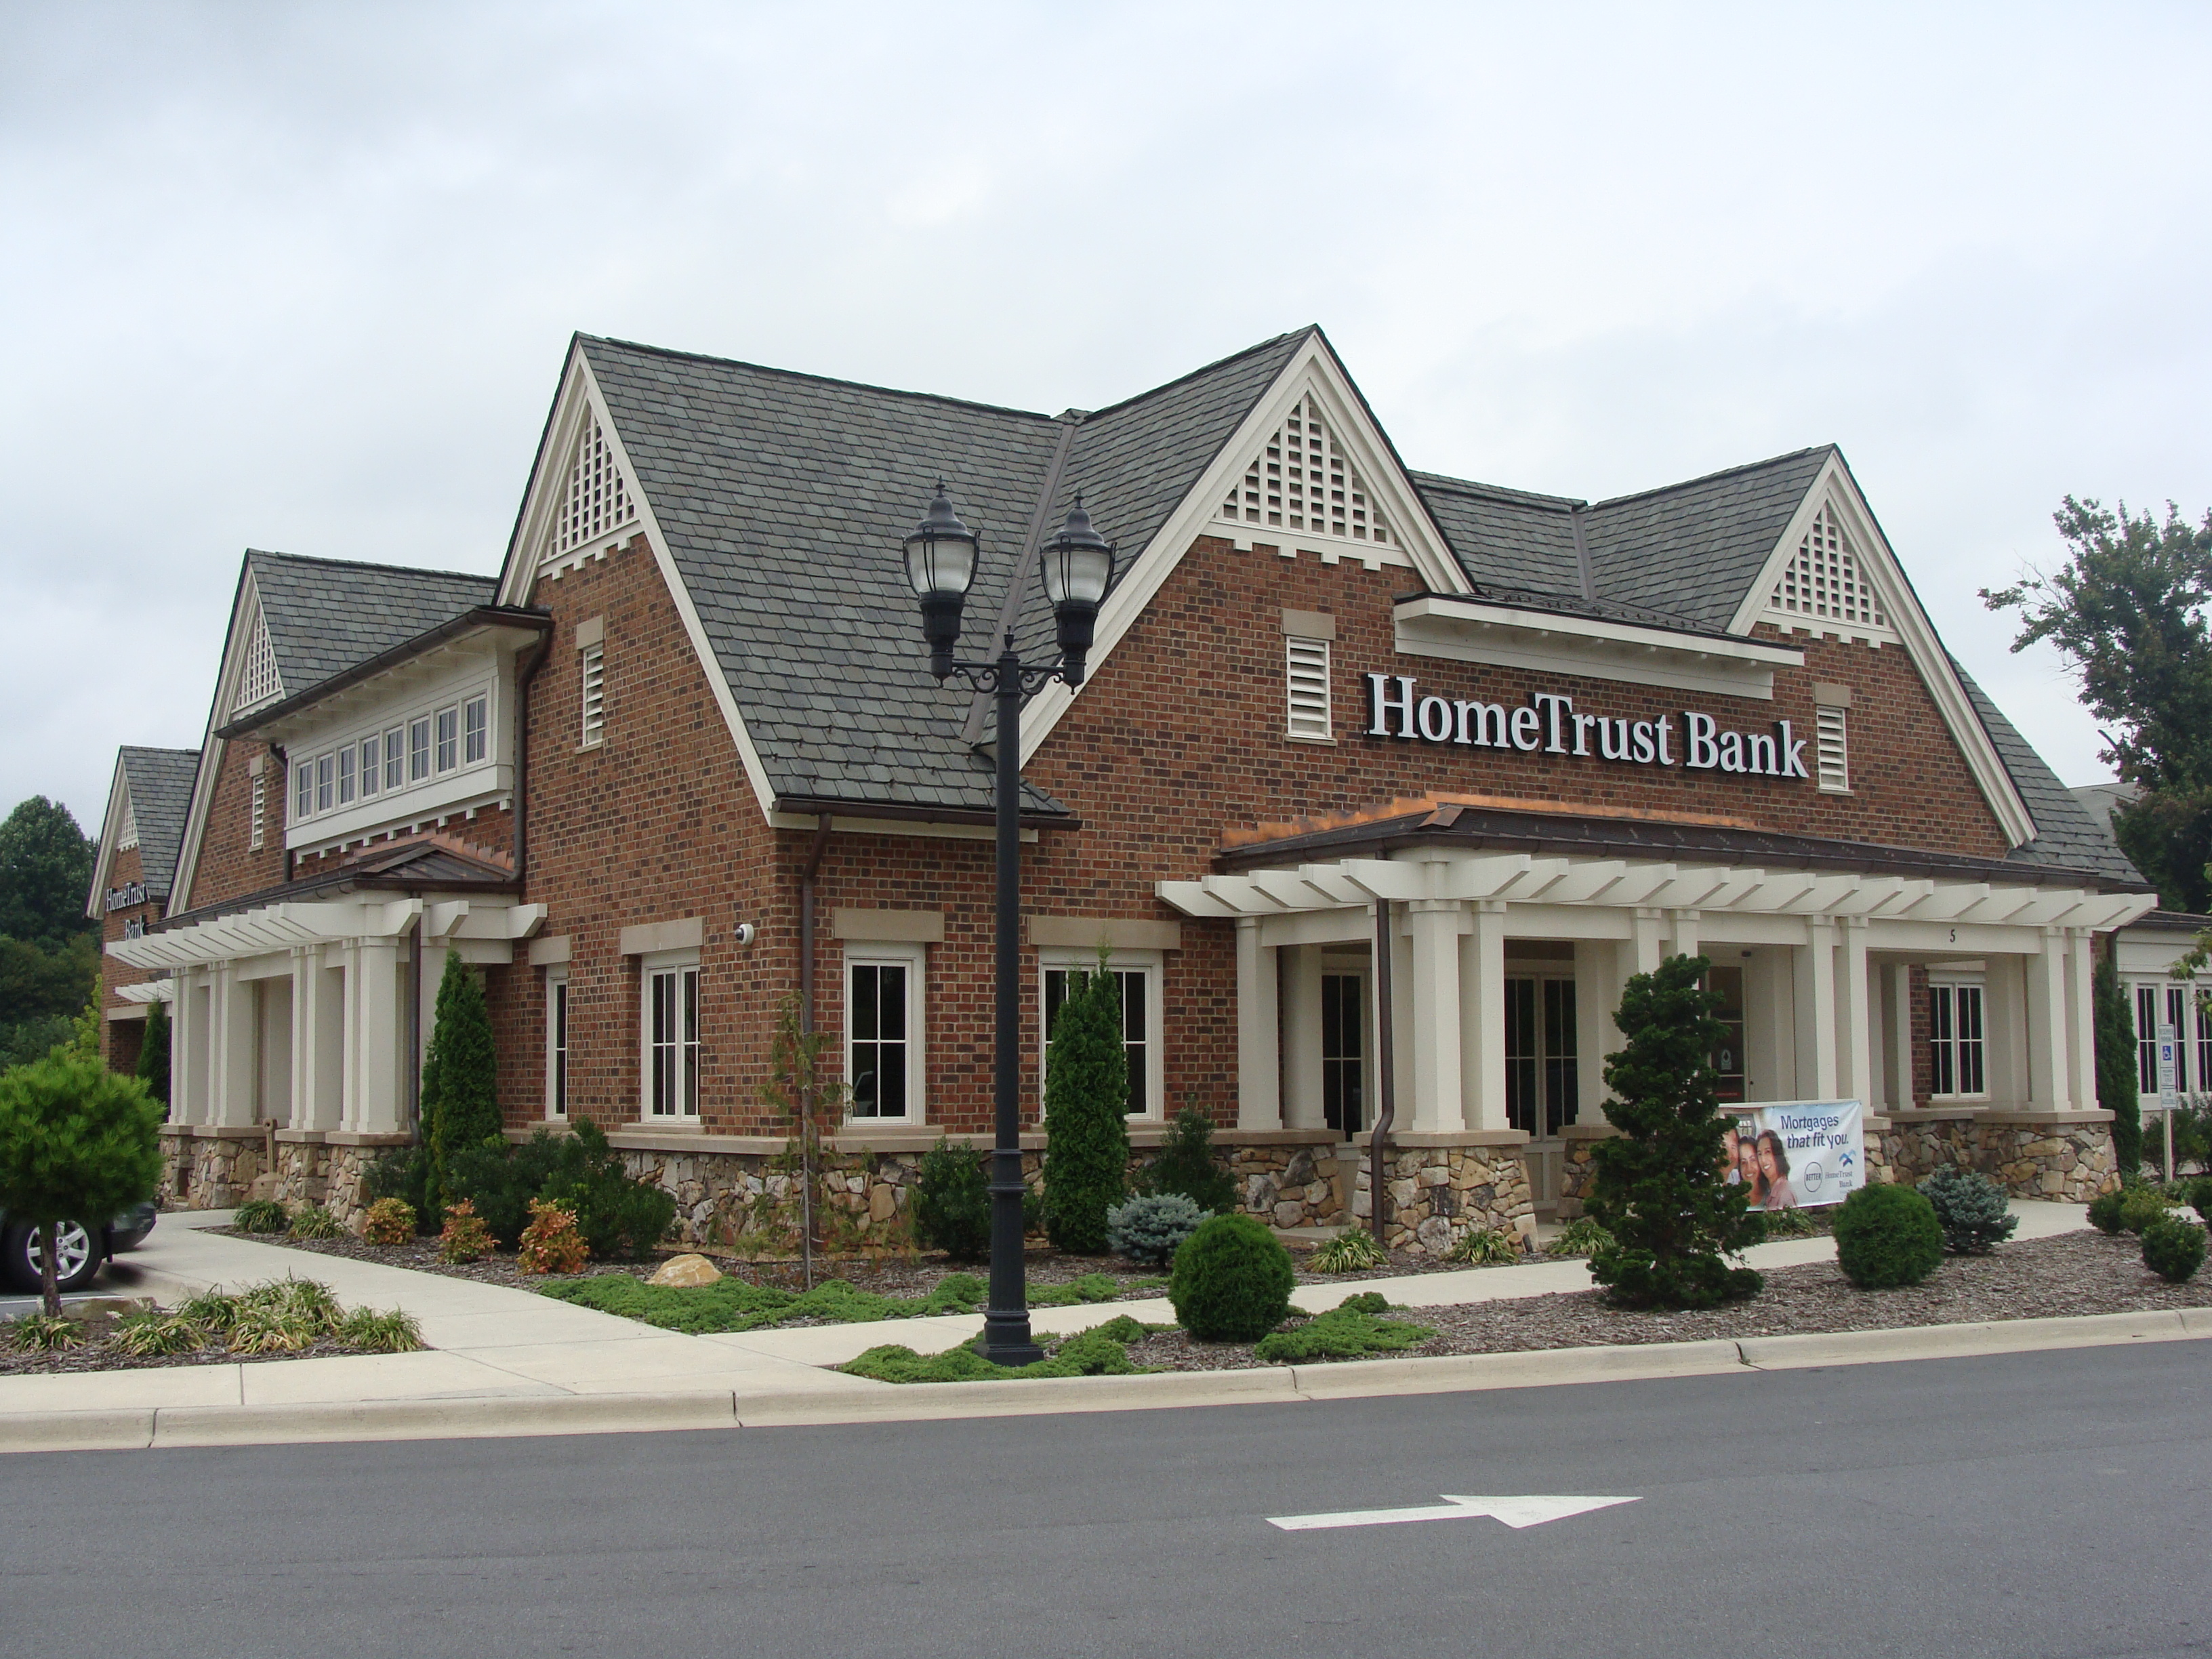 Façade of HomeTrust Bank on Northridge Commons Parkway, Weaverville NC